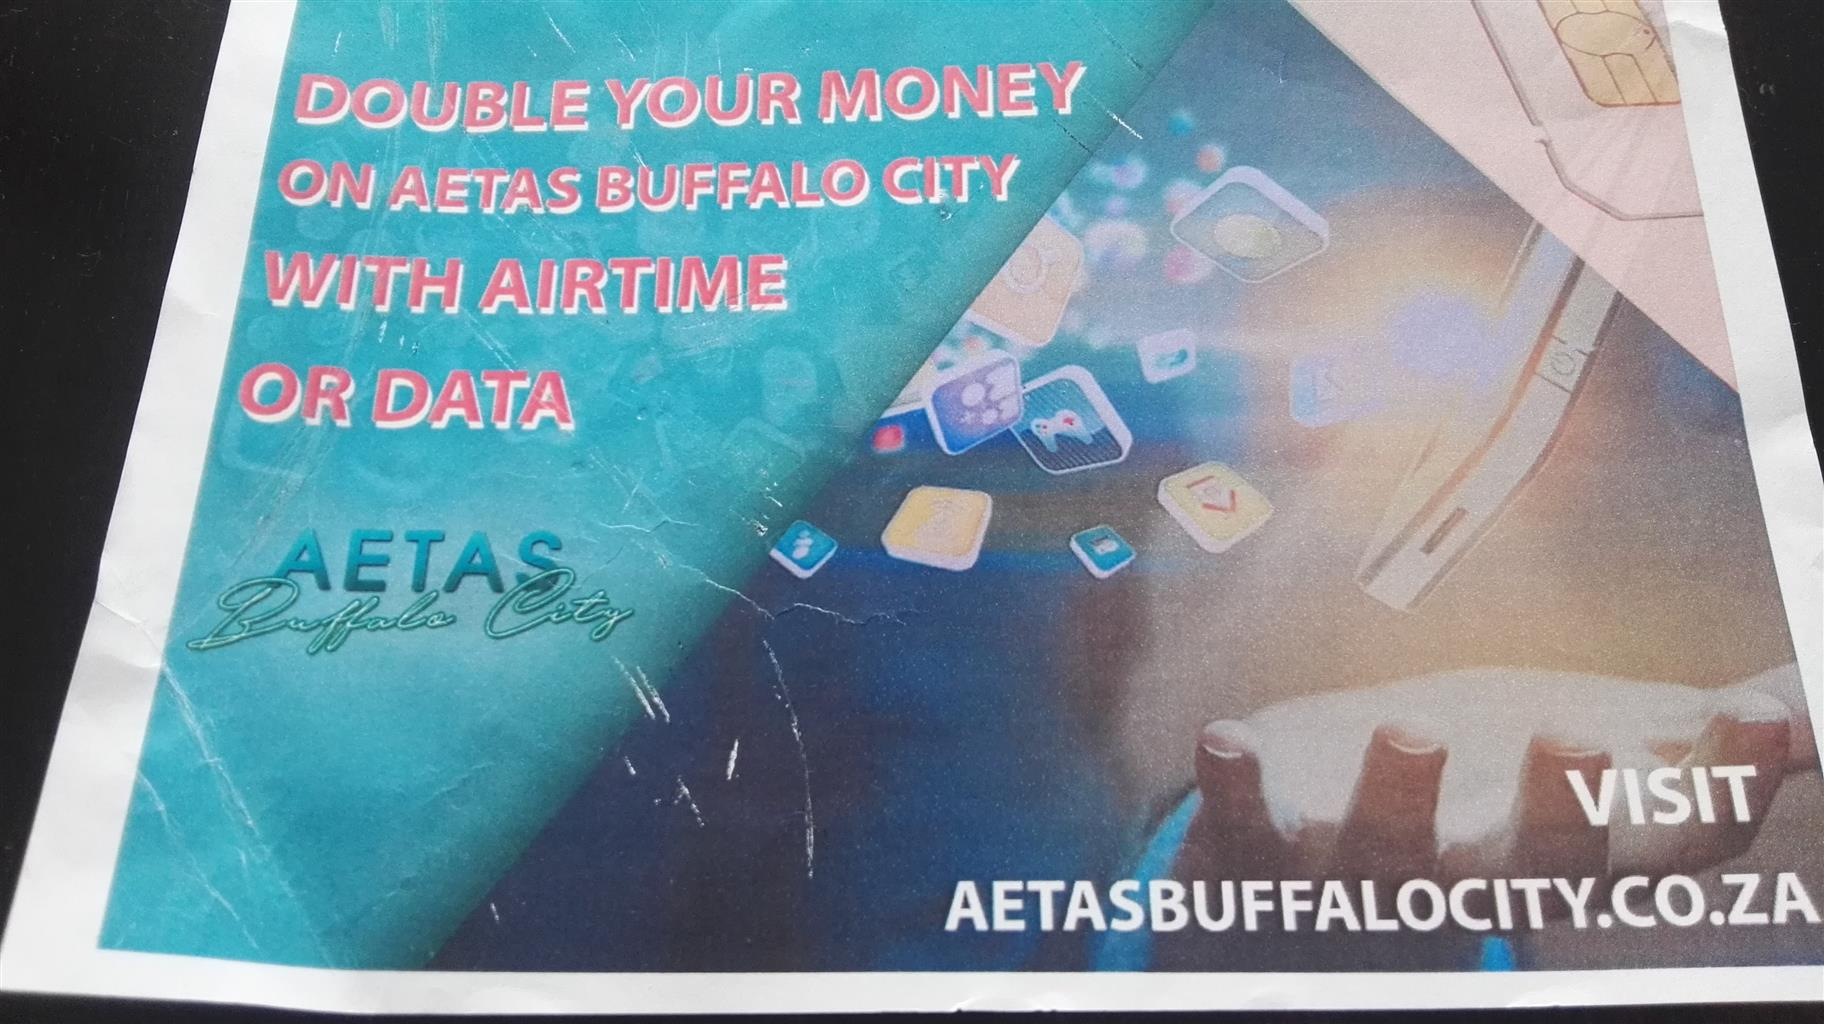 GET 100% FREE AIRTIME AND DATA BACK FOR ANY AMOUNT YOU PURCHASE WITH AETAS BUFFALO CITY